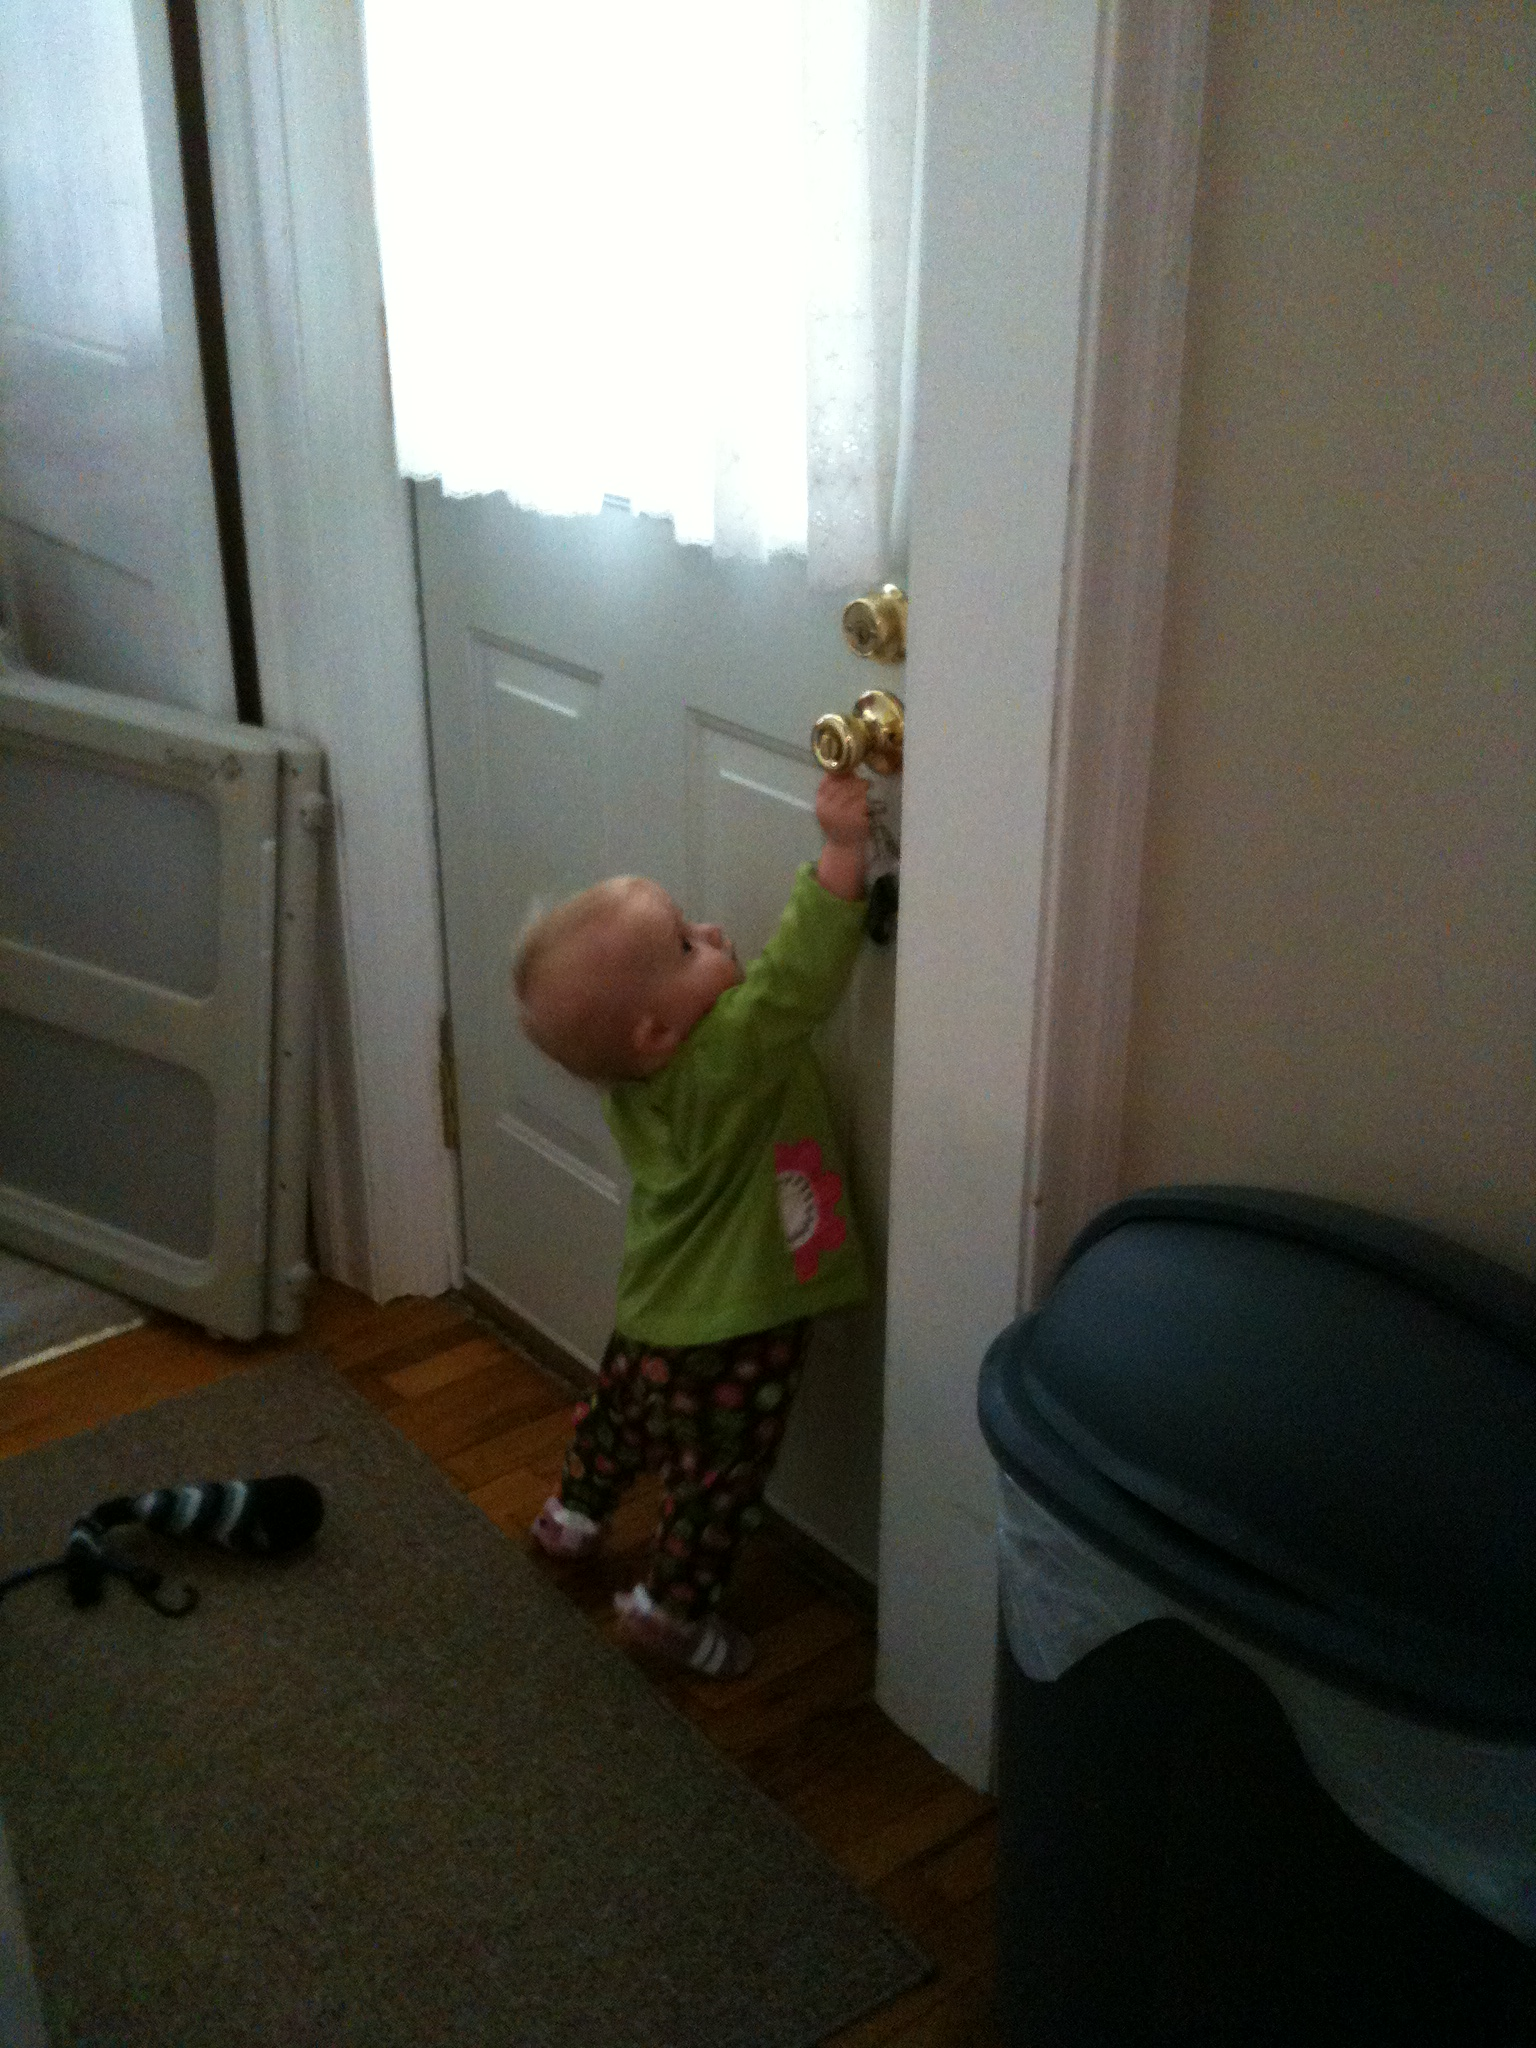 kivrin wants to go for a walk